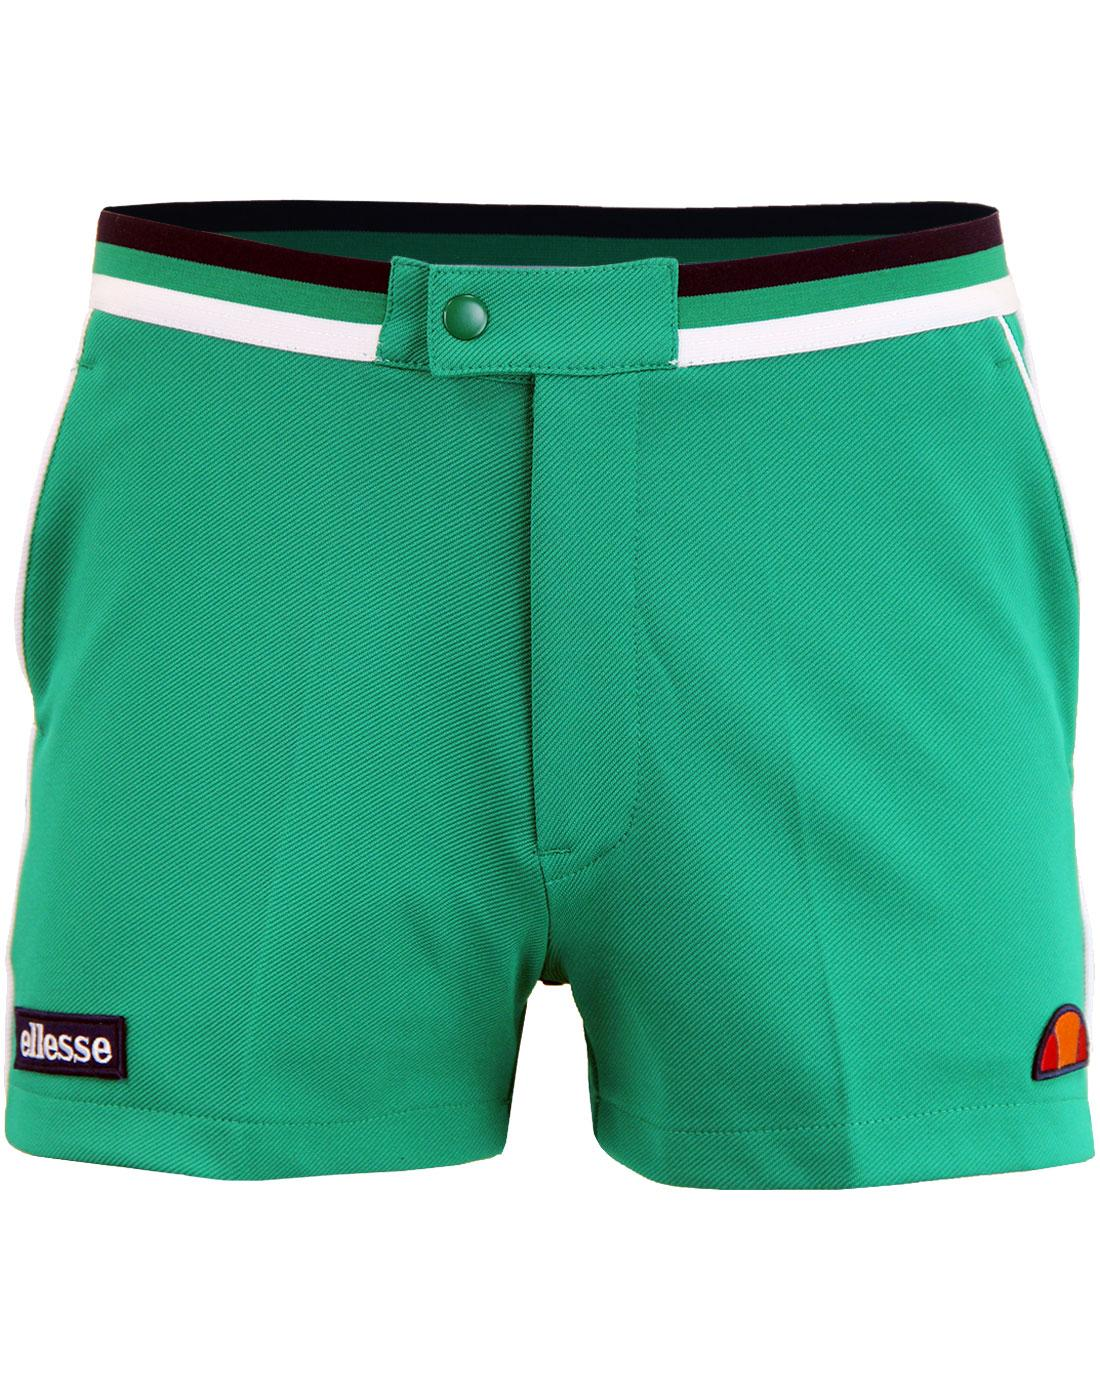 Knapp ELLESSE Men's Retro 70s Tennis Shorts (BG)